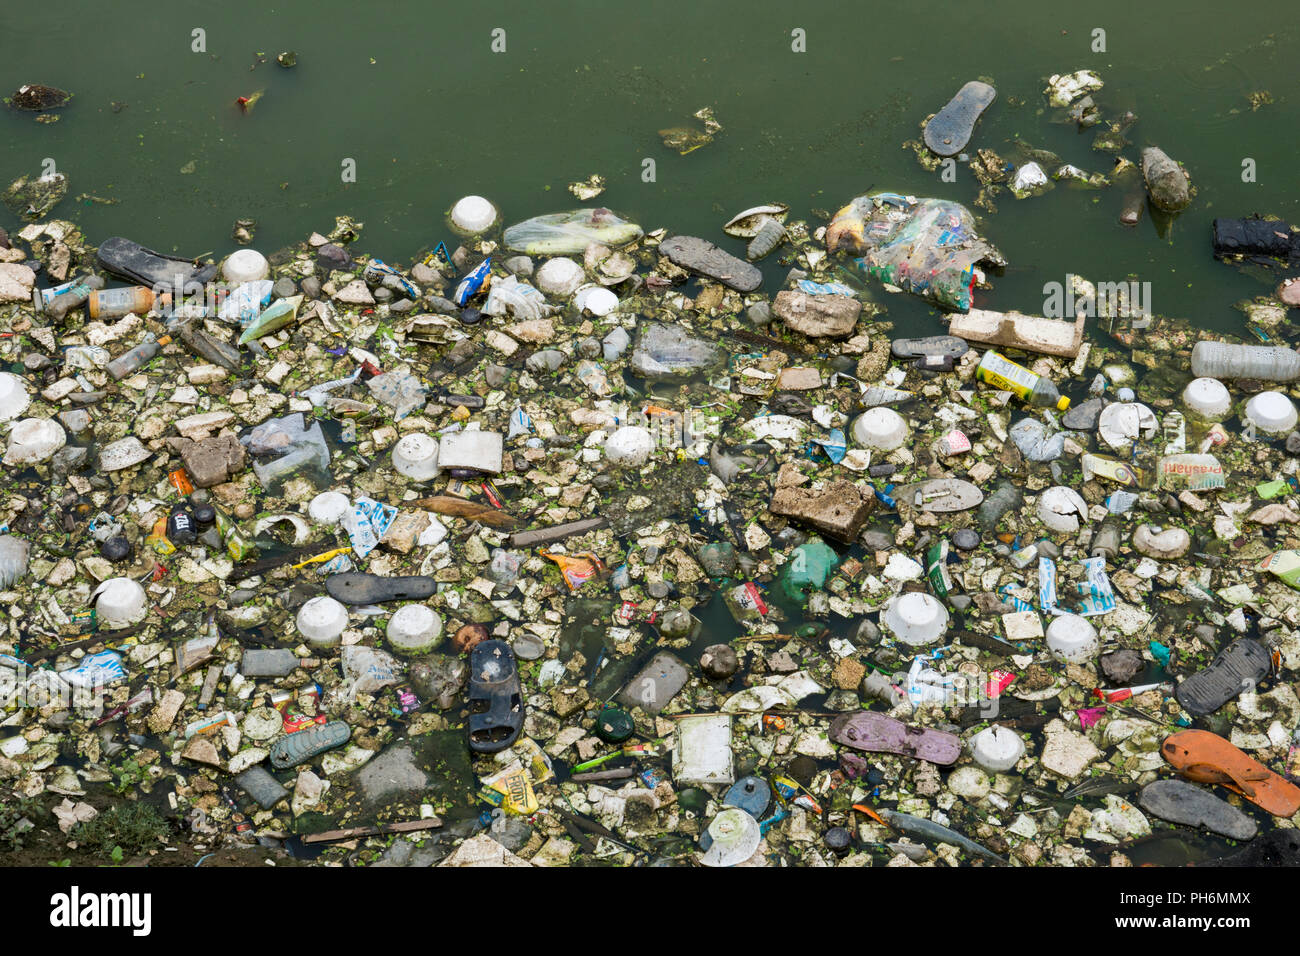 Plastic bags, bottles, polystyrene and other trash contaminates the water of a lagoon in Pushkar, India - Stock Image